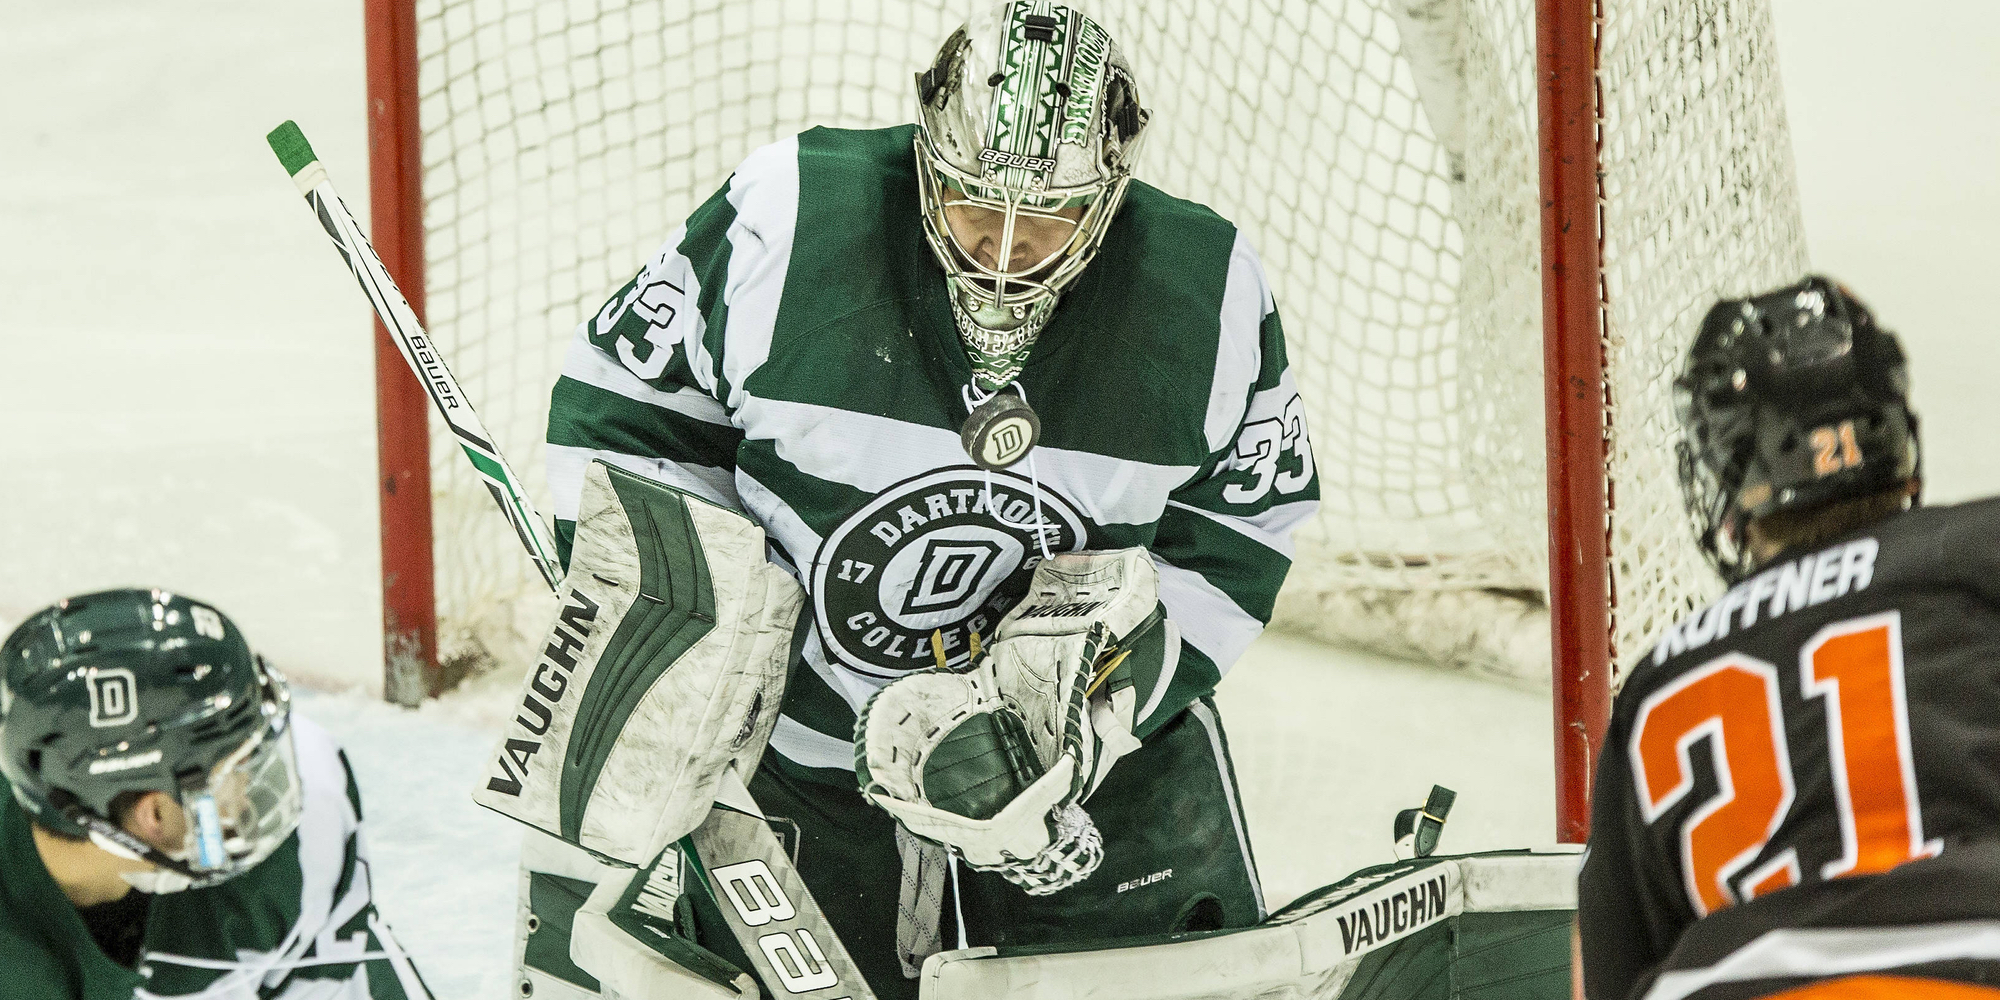 Dartmouth Downed By Princeton at Home